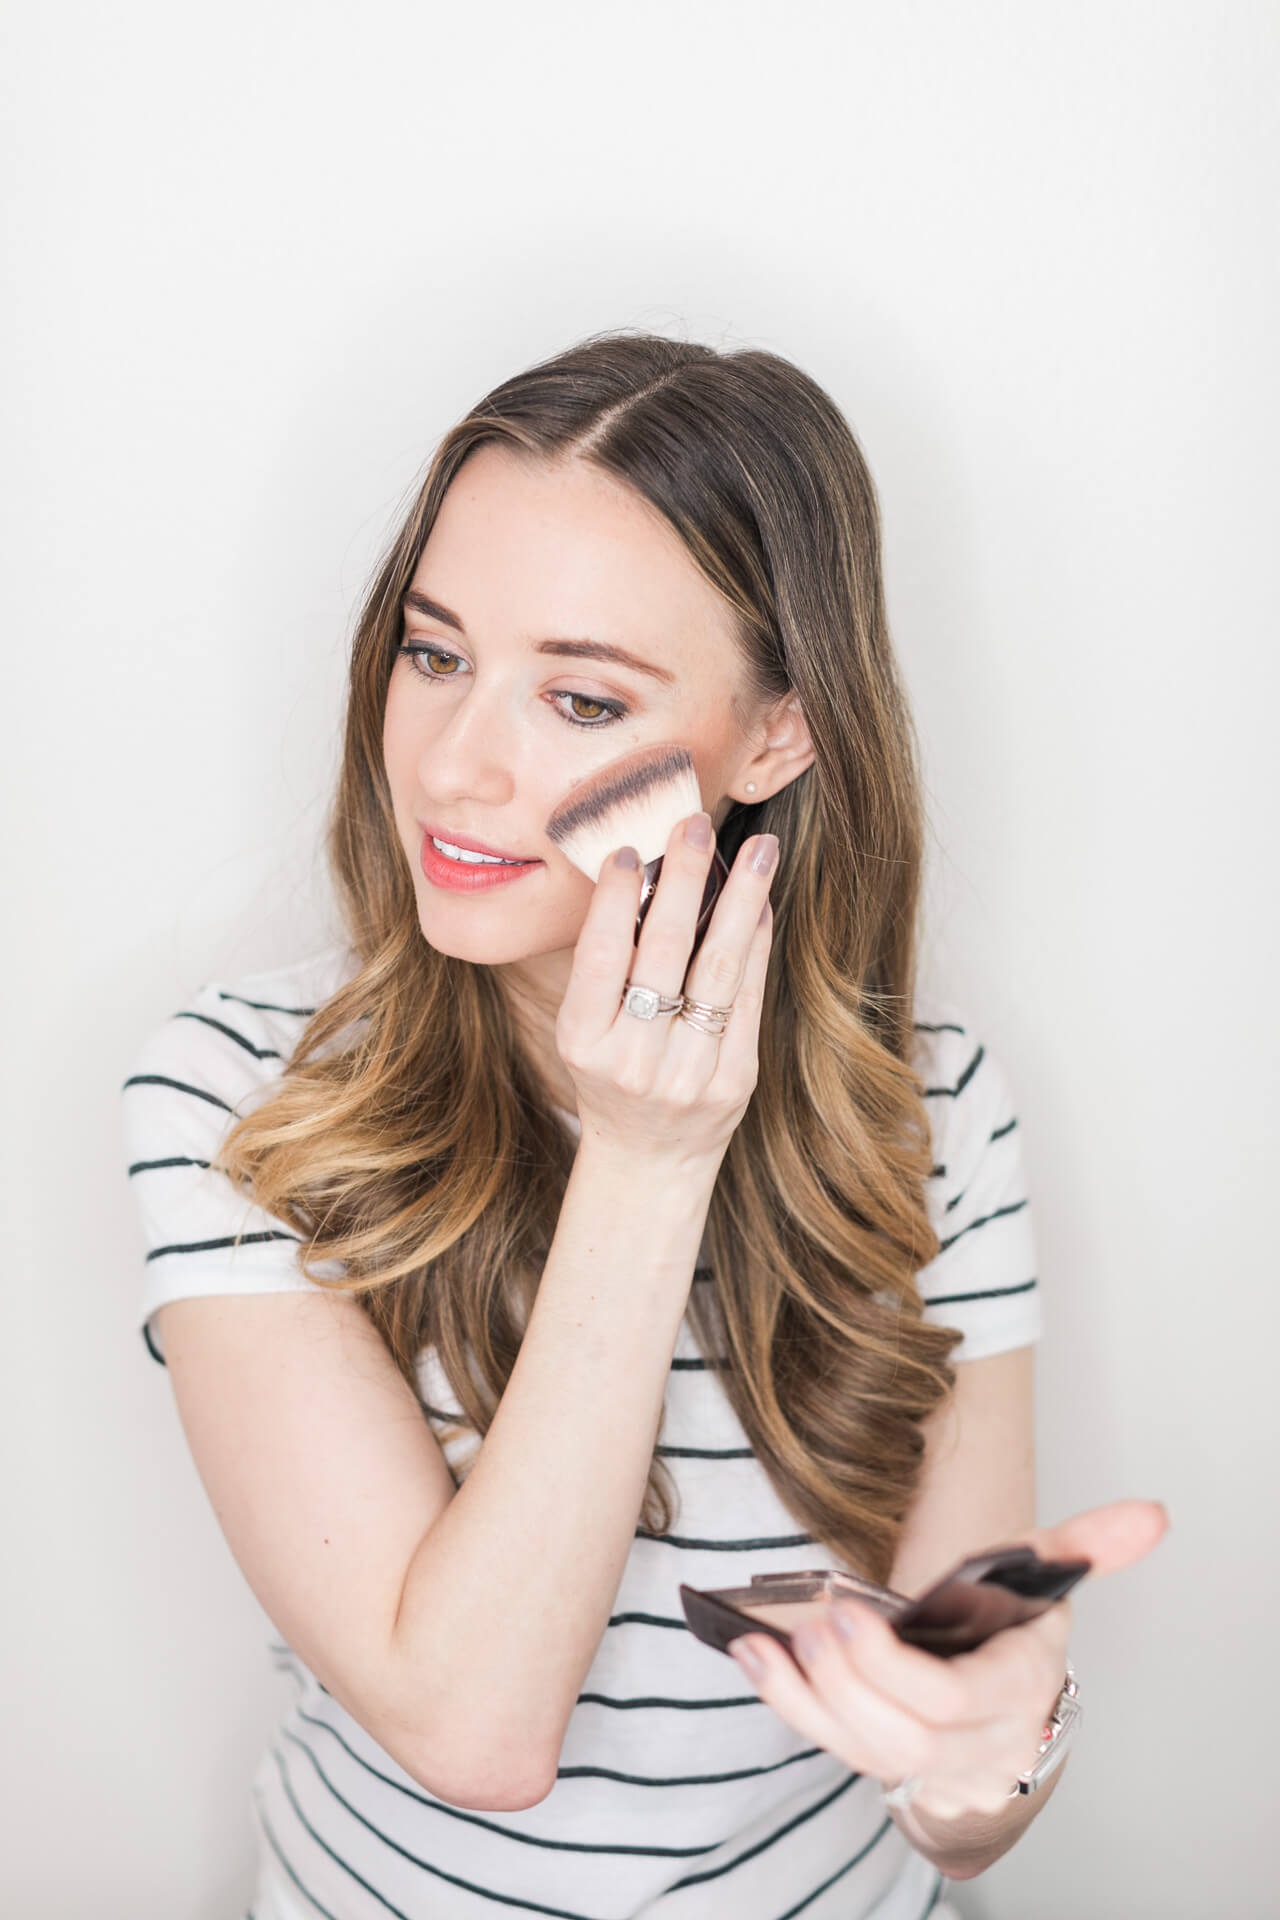 using a powder highlighter from hourglass